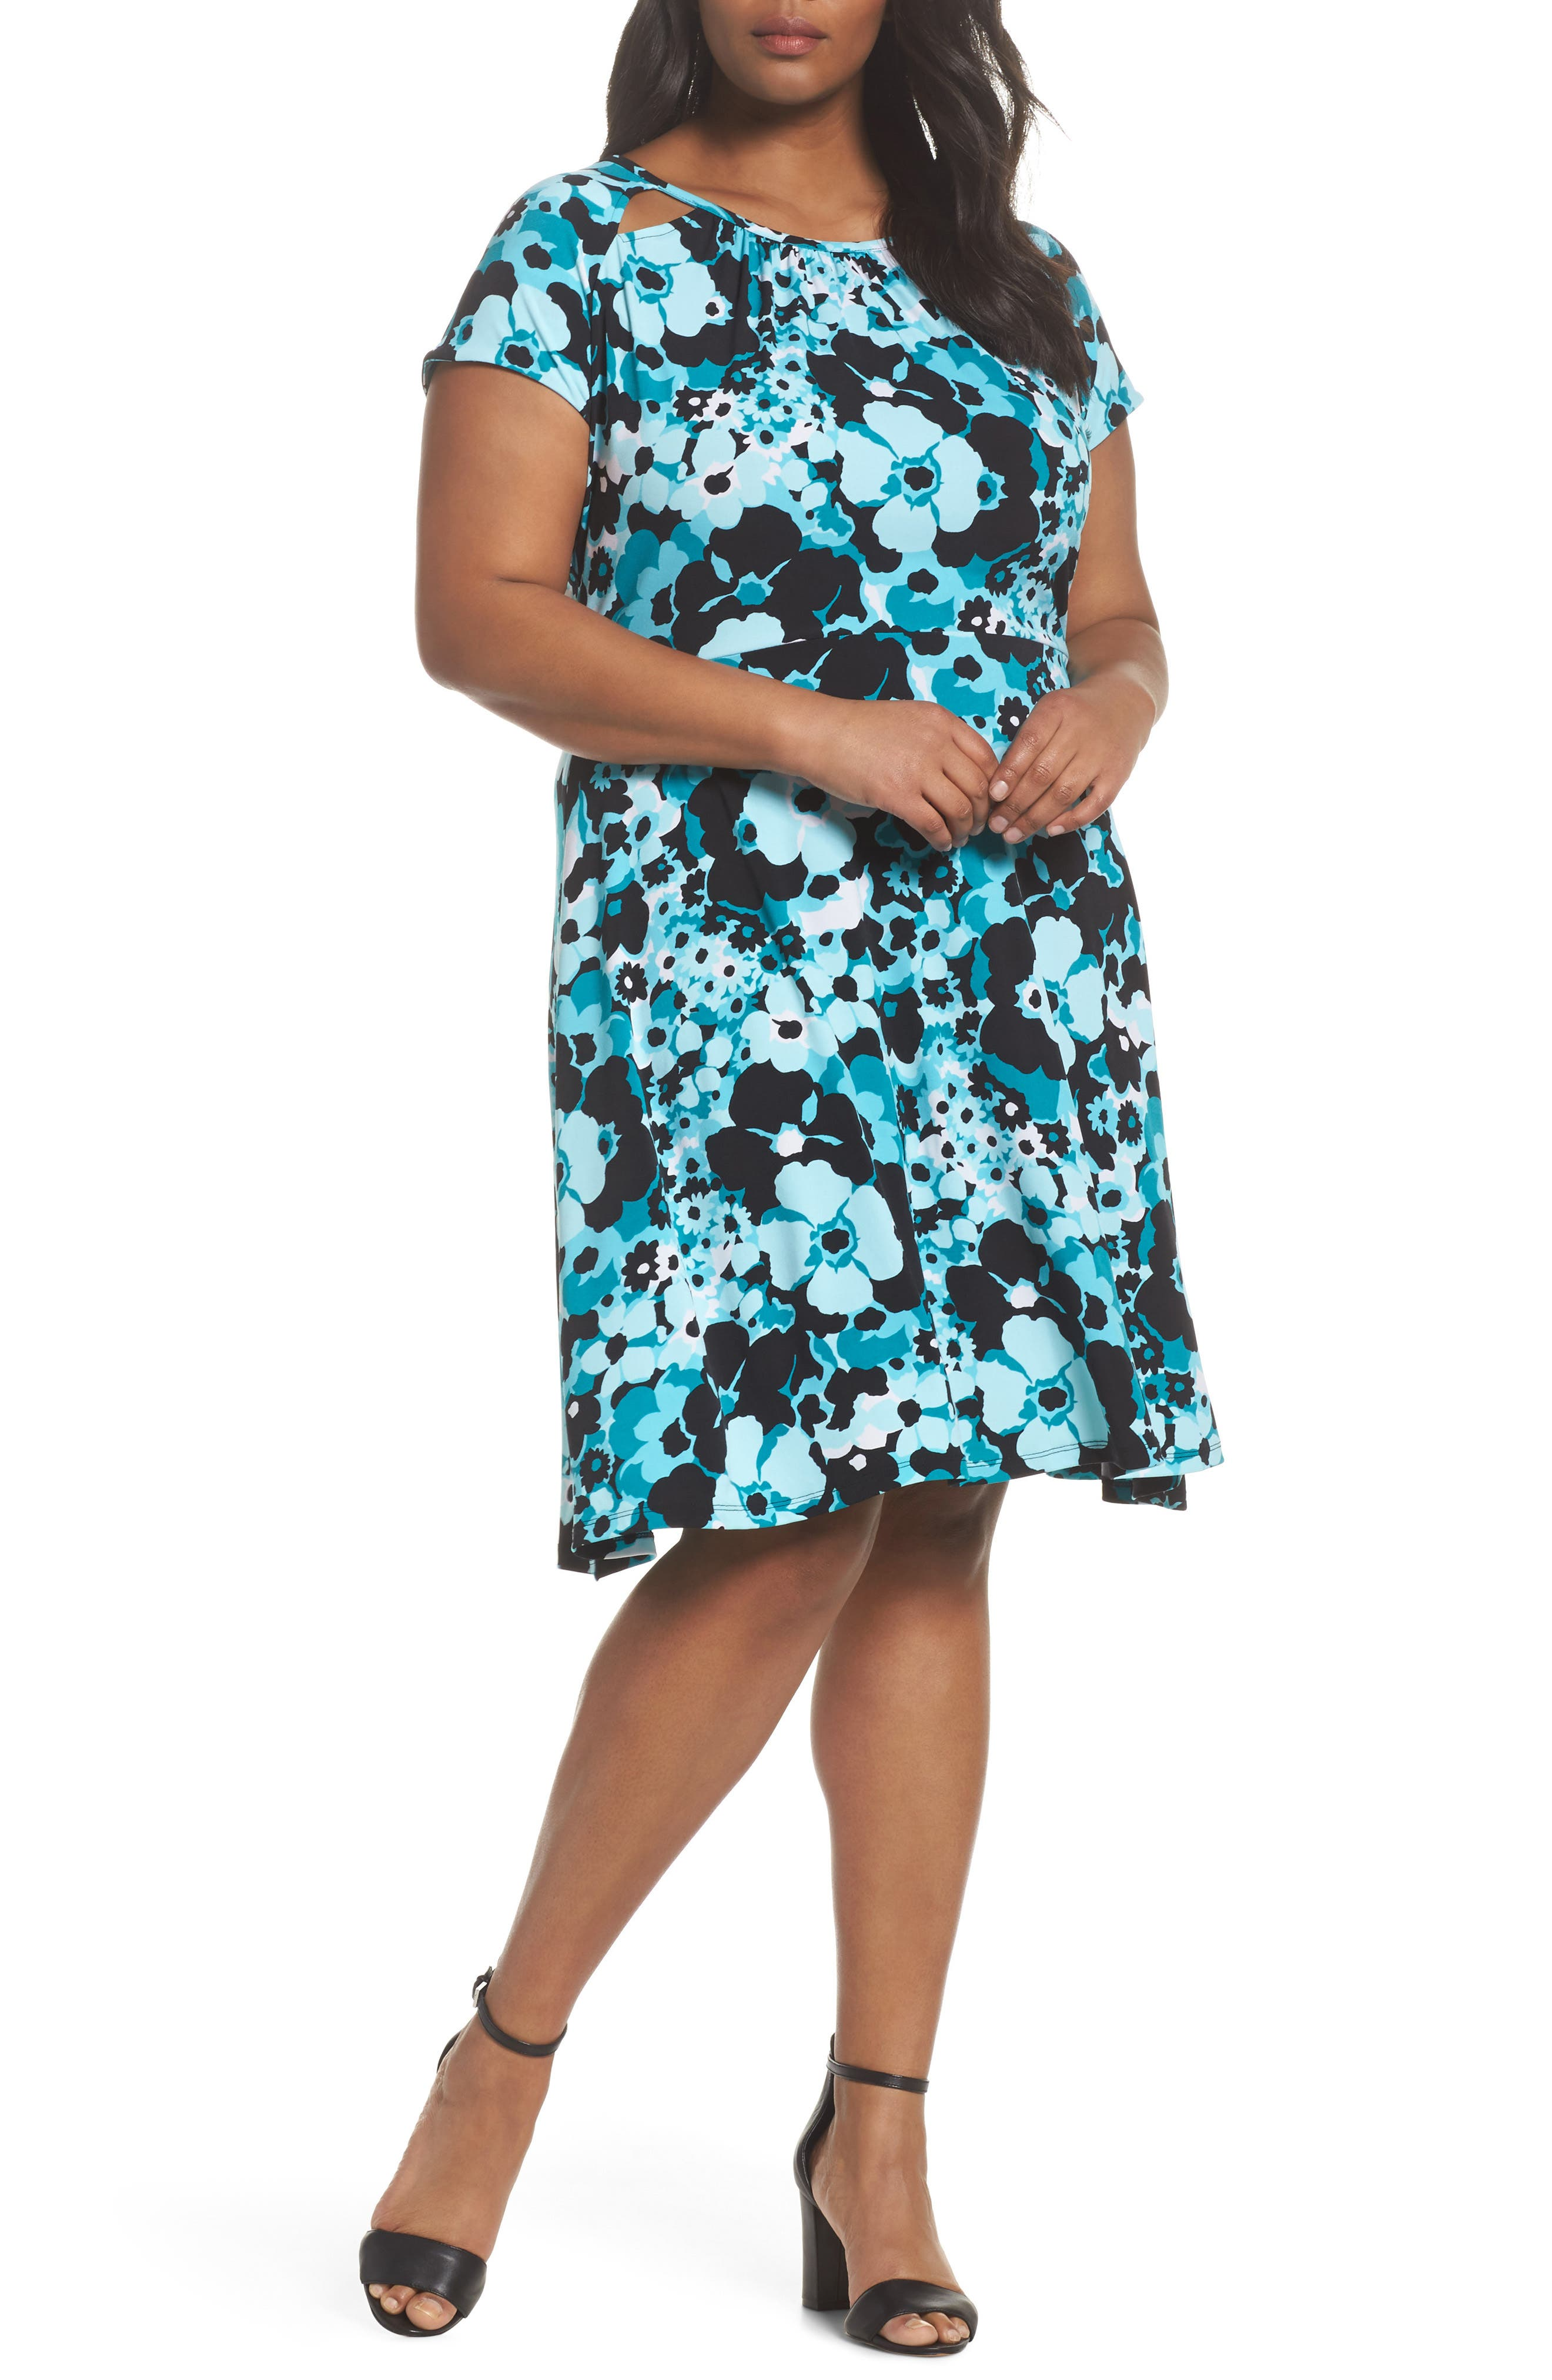 Alternate Image 1 Selected - MICHAEL Michael Kors Springtime Floral Cutout Dress (Plus Size)